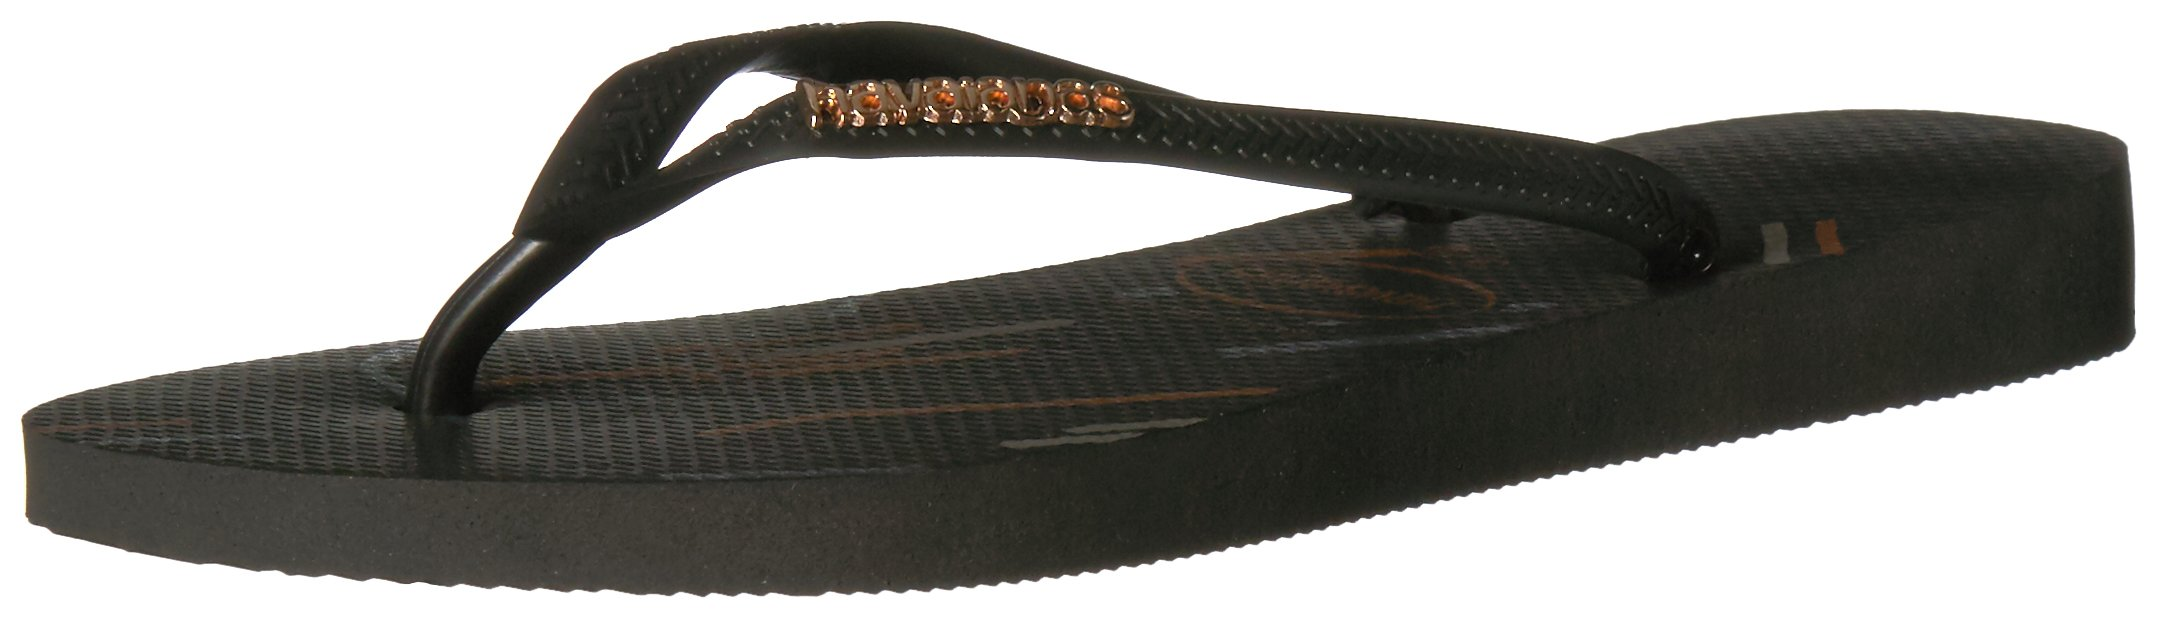 Havaianas Women's Slim Flip Flop Sandals, Logo Metallic Fine Lines,Black/Rose Gold,37/38 BR (7-8 M US)